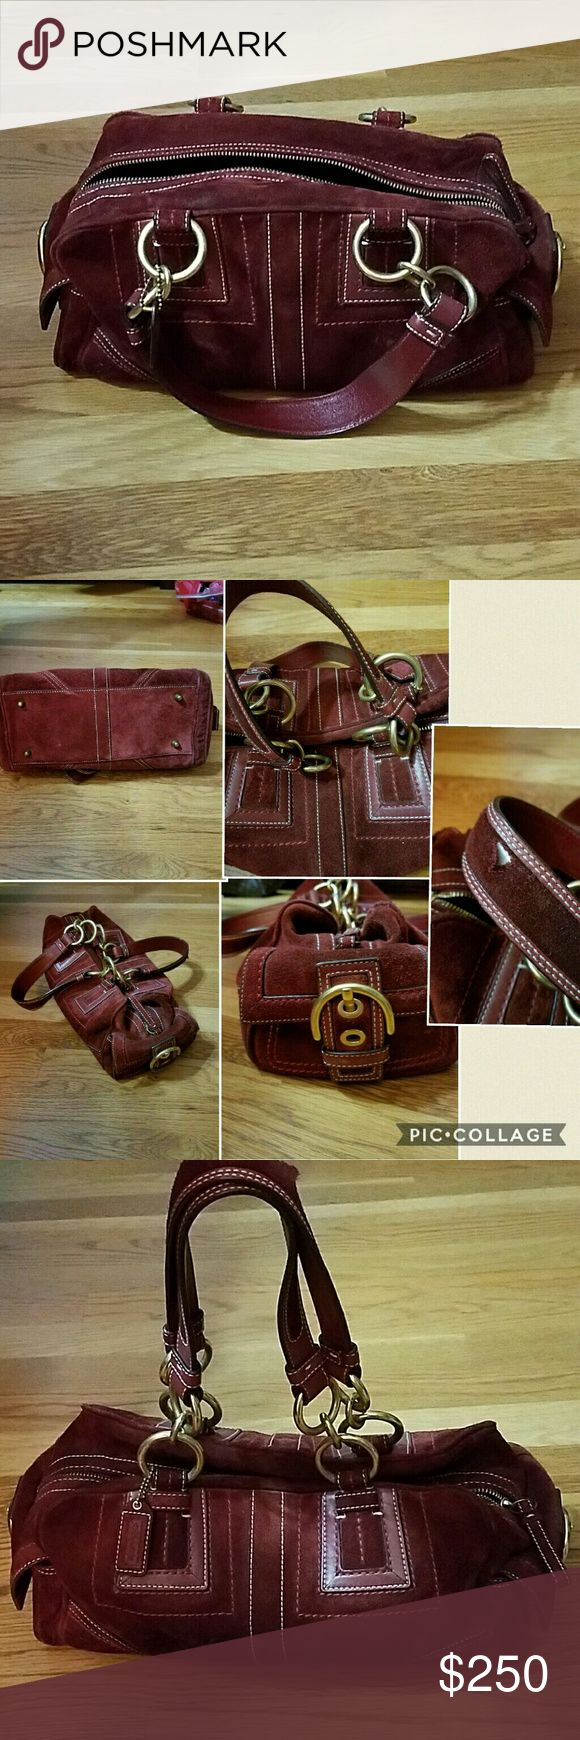 Vintage Coach Bag Vintage Coach Bag  Red Suede Only real damage is small tear on strap I was told you can go to any Coach store and send it off for repair Beautiful bag I've never seen one like it before Coach Bags Shoulder Bags